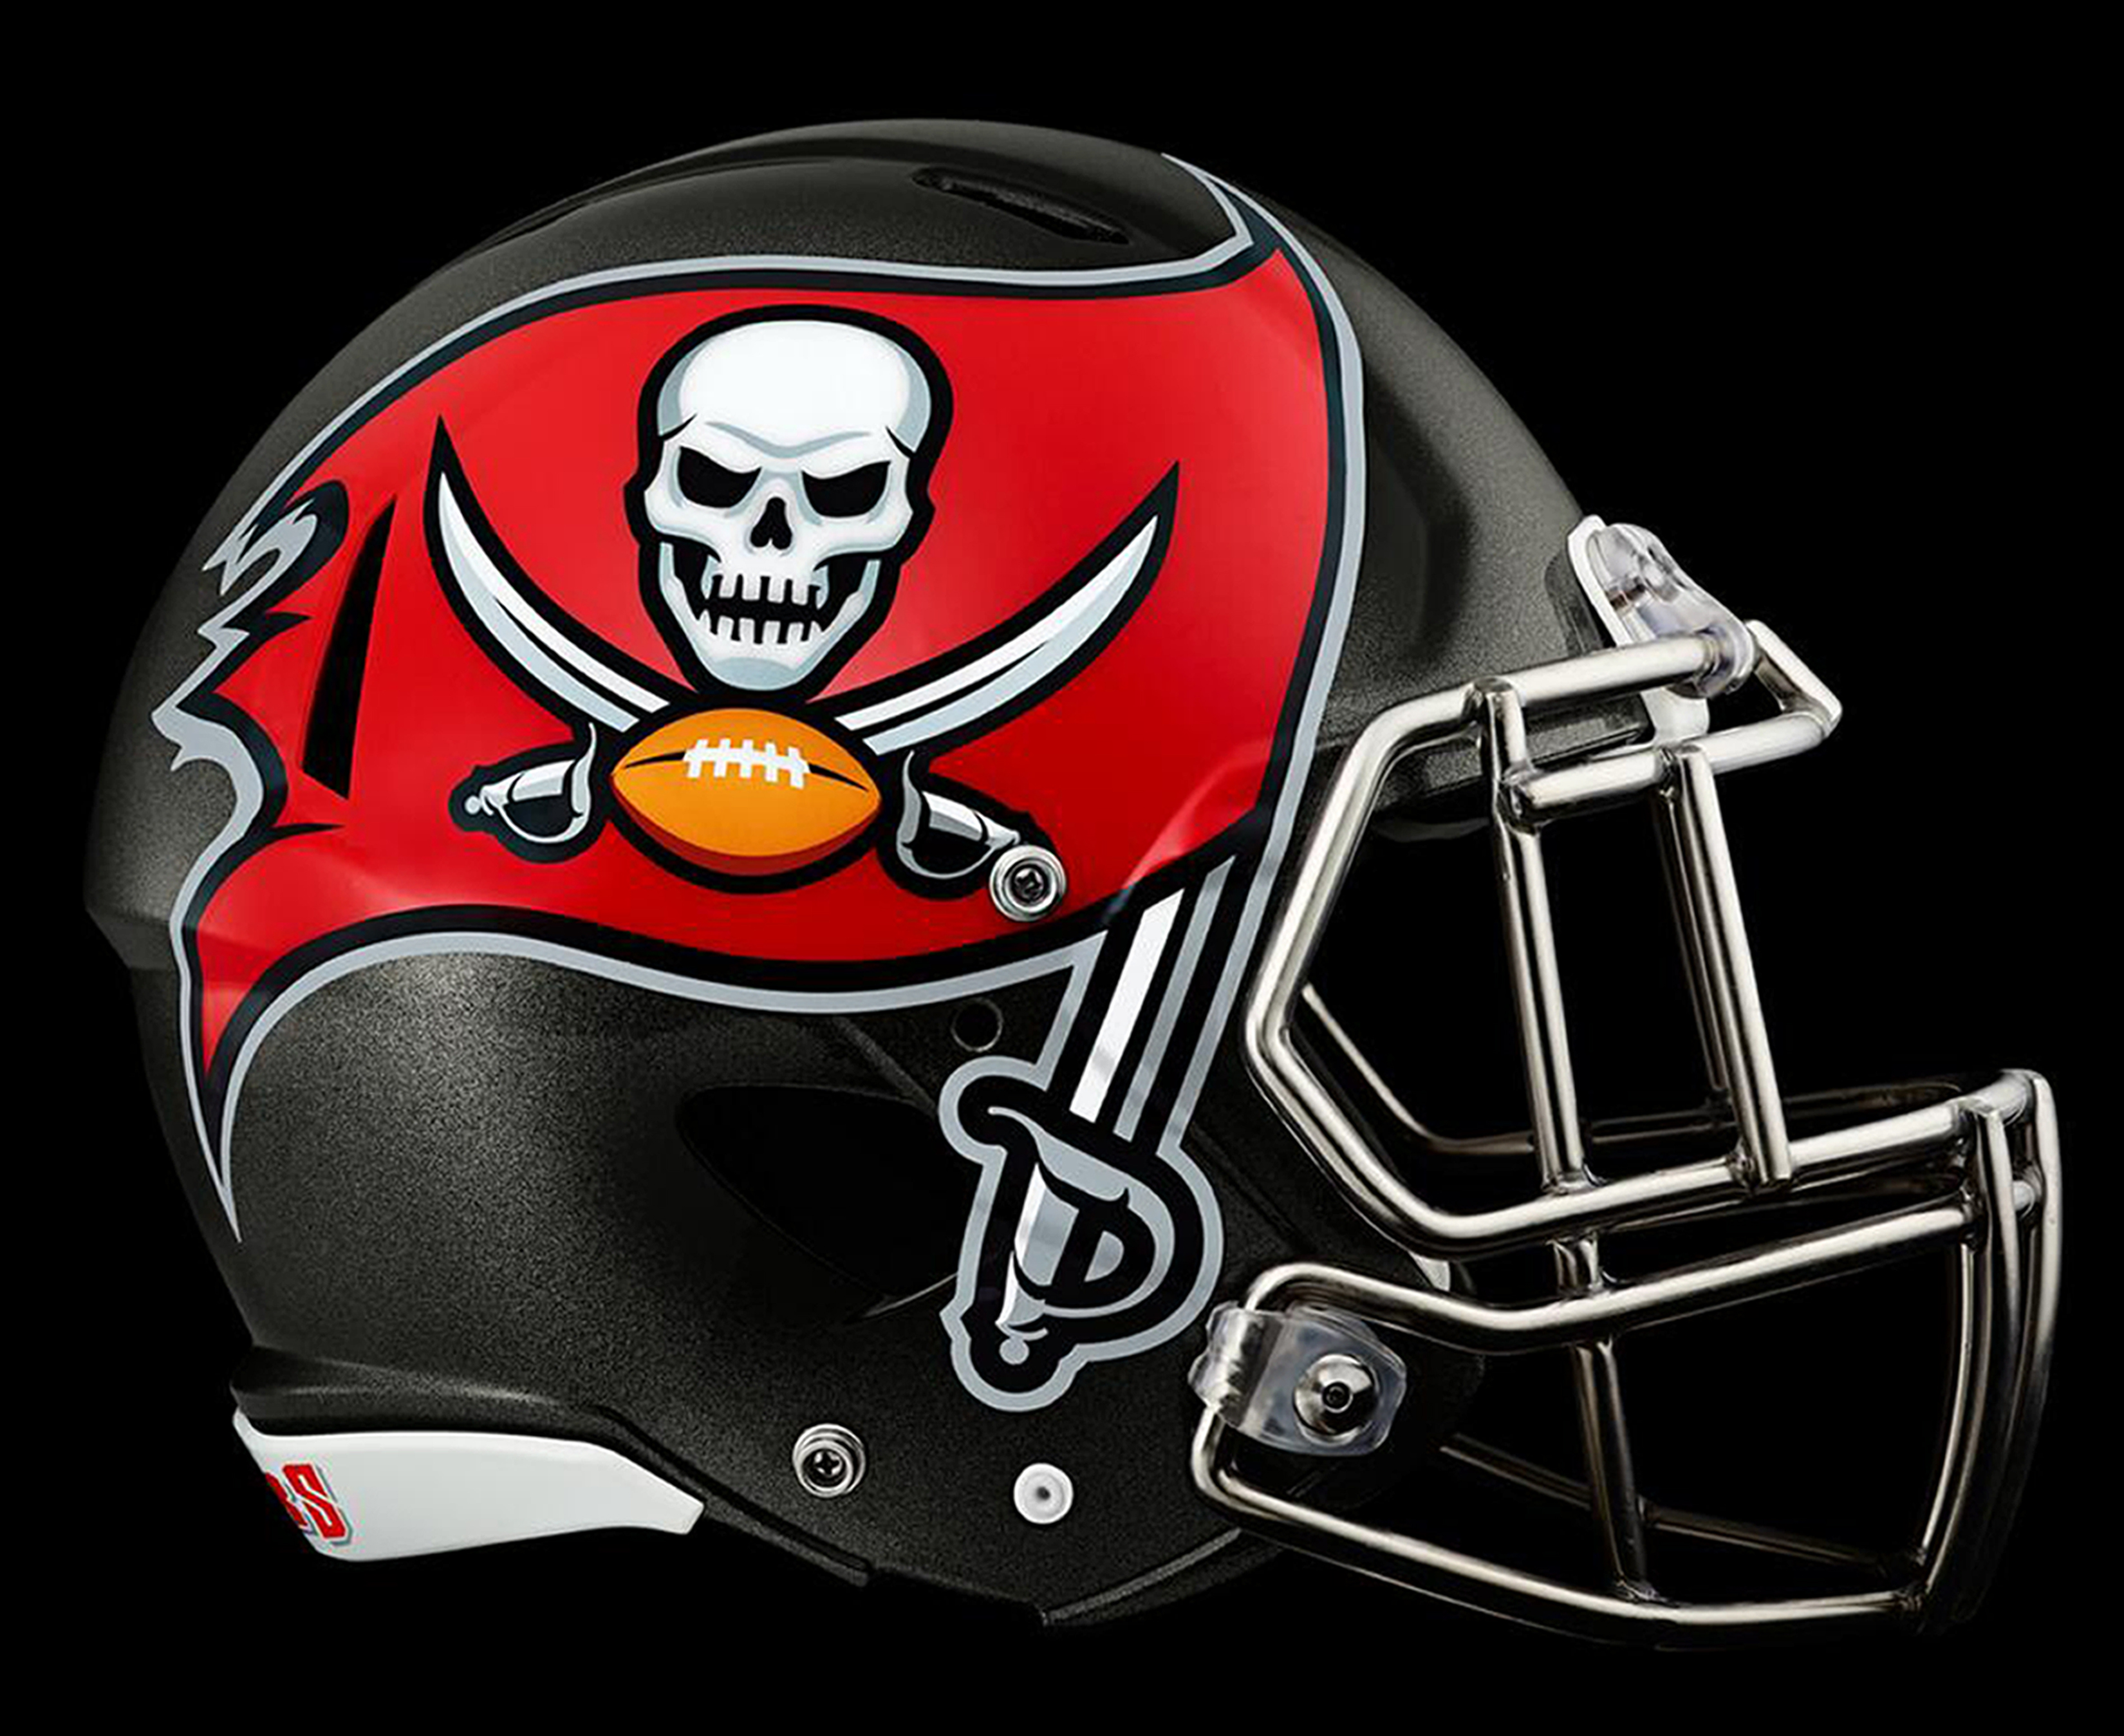 Tampa Bay Bucs Wallpaper